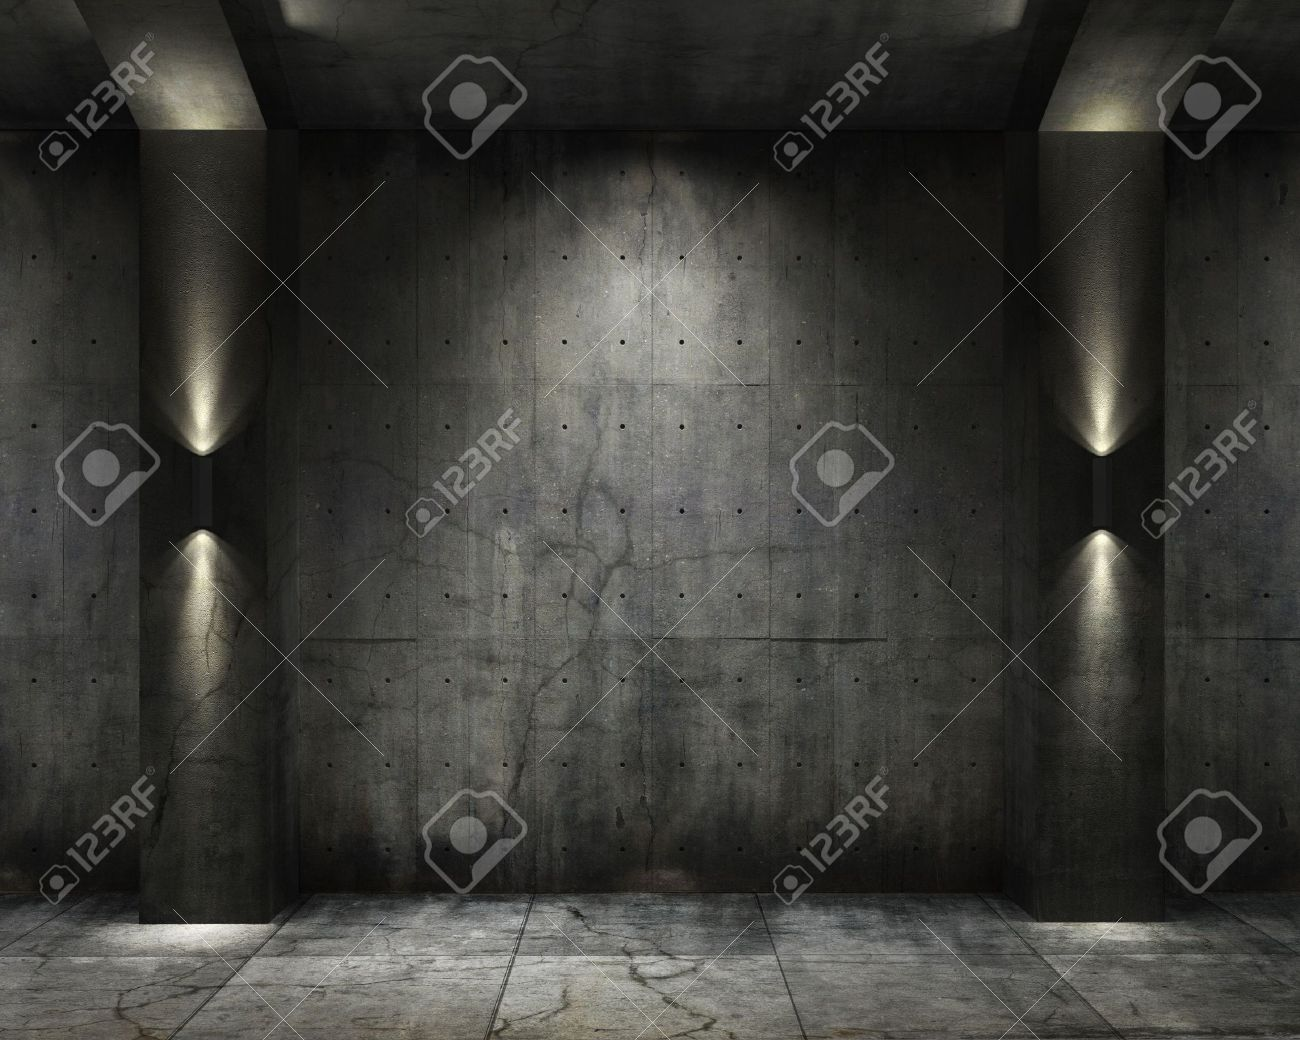 Dark bedroom background dark spotlight room background - Dark Room Grunge Background Of An Interior Concrete Vault With Interesting Spot Lighting Stock Photo